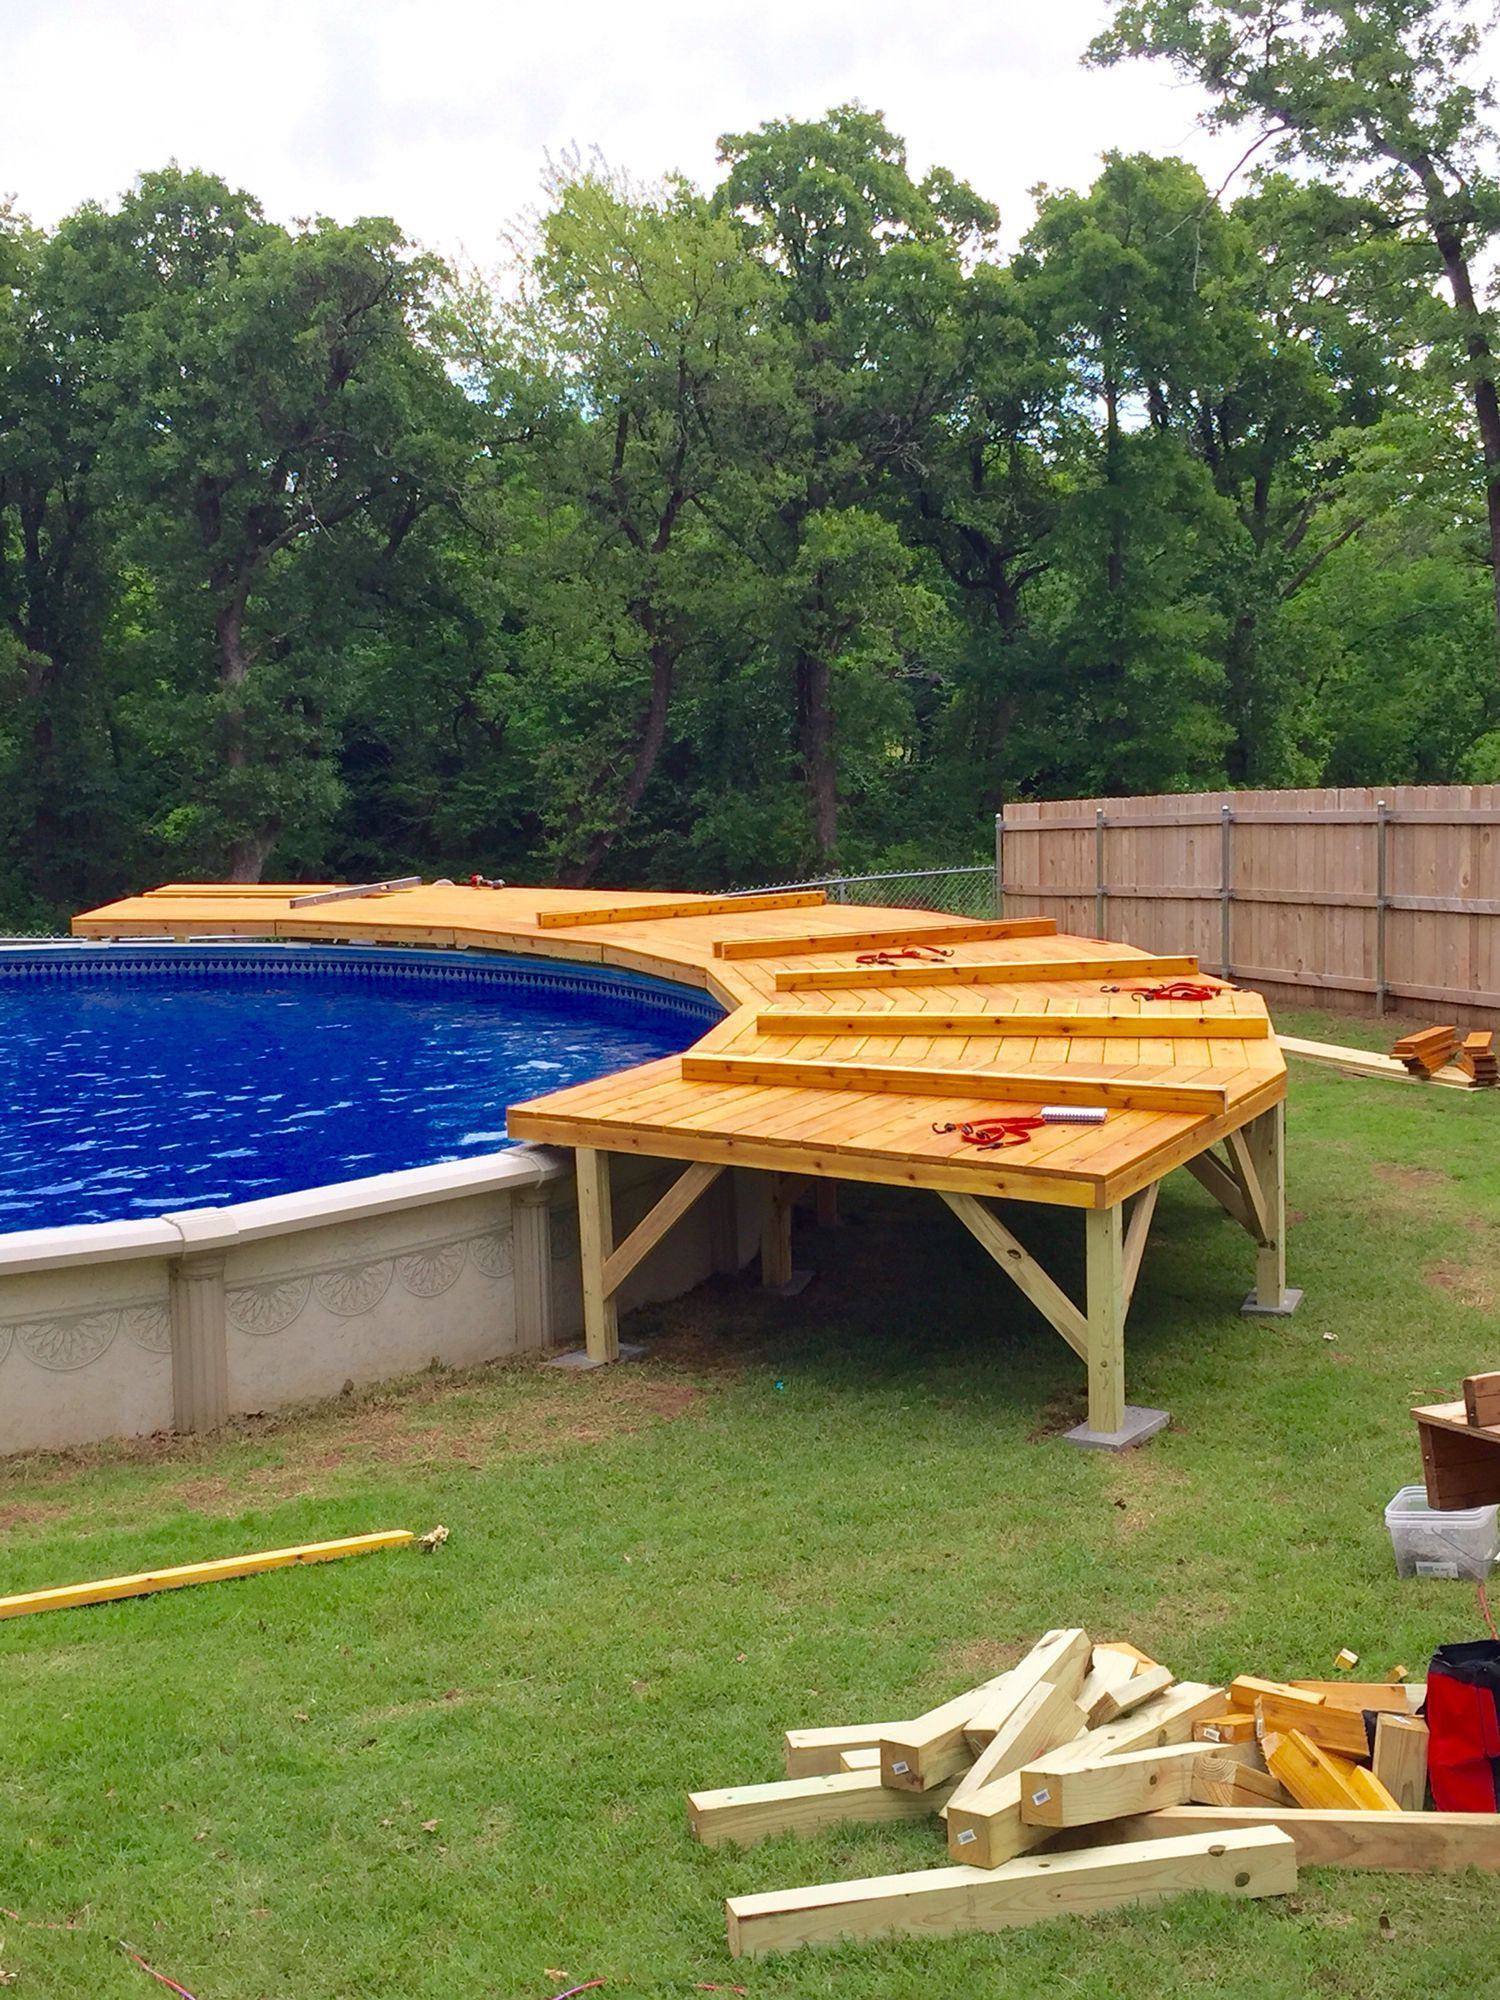 21 the ultimate guide to above ground pool ideas with - Above ground pool ideas on a budget ...